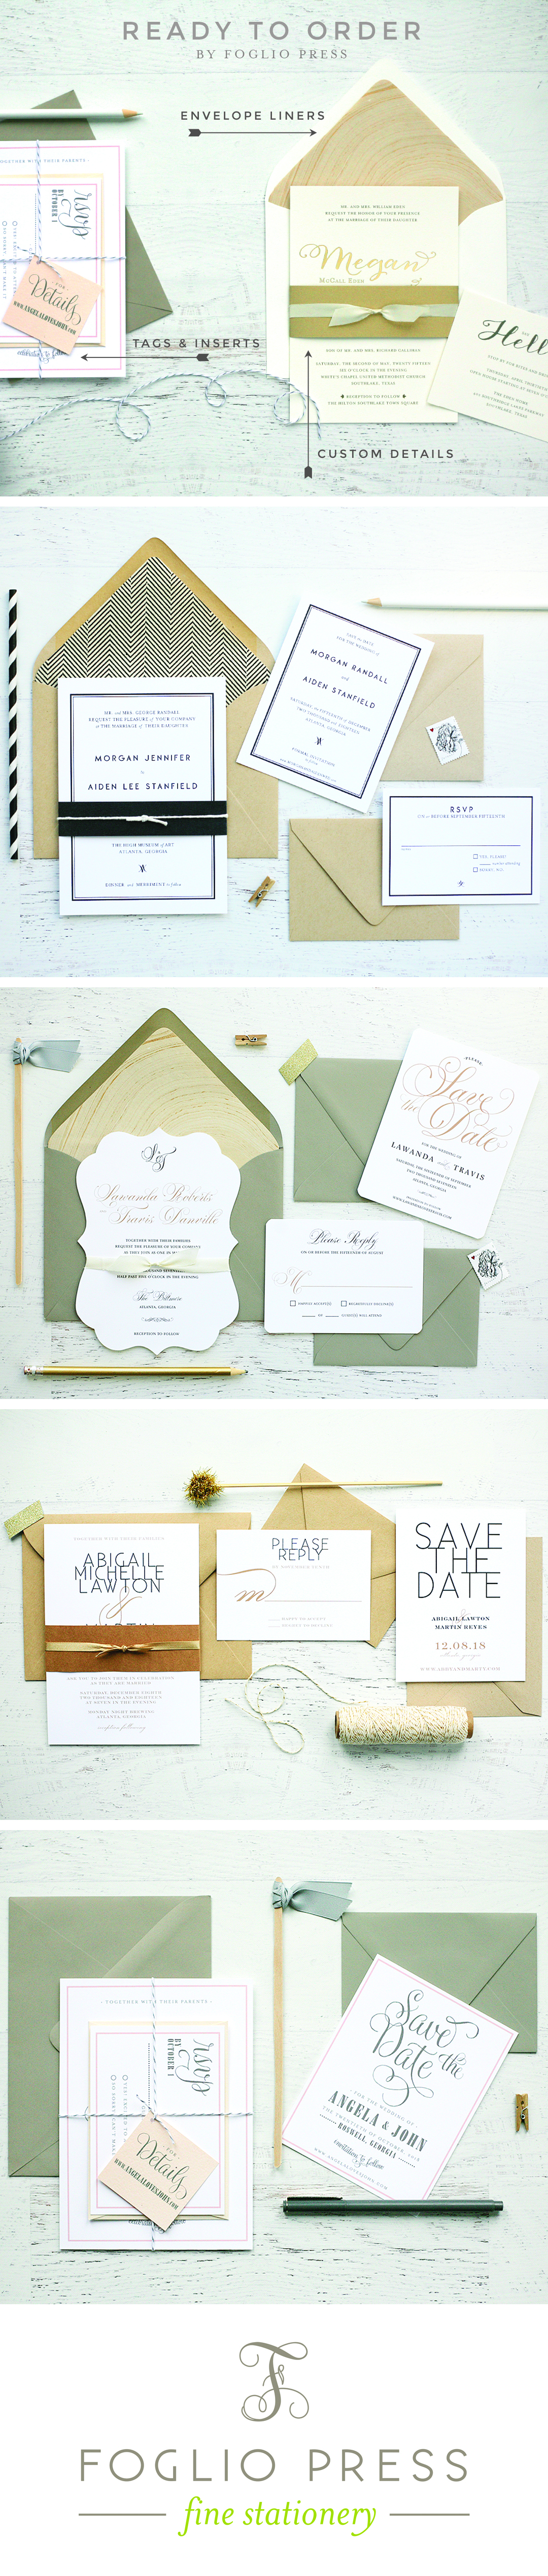 27 simple and chic new Wedding Invitations, ready to shop right now ...